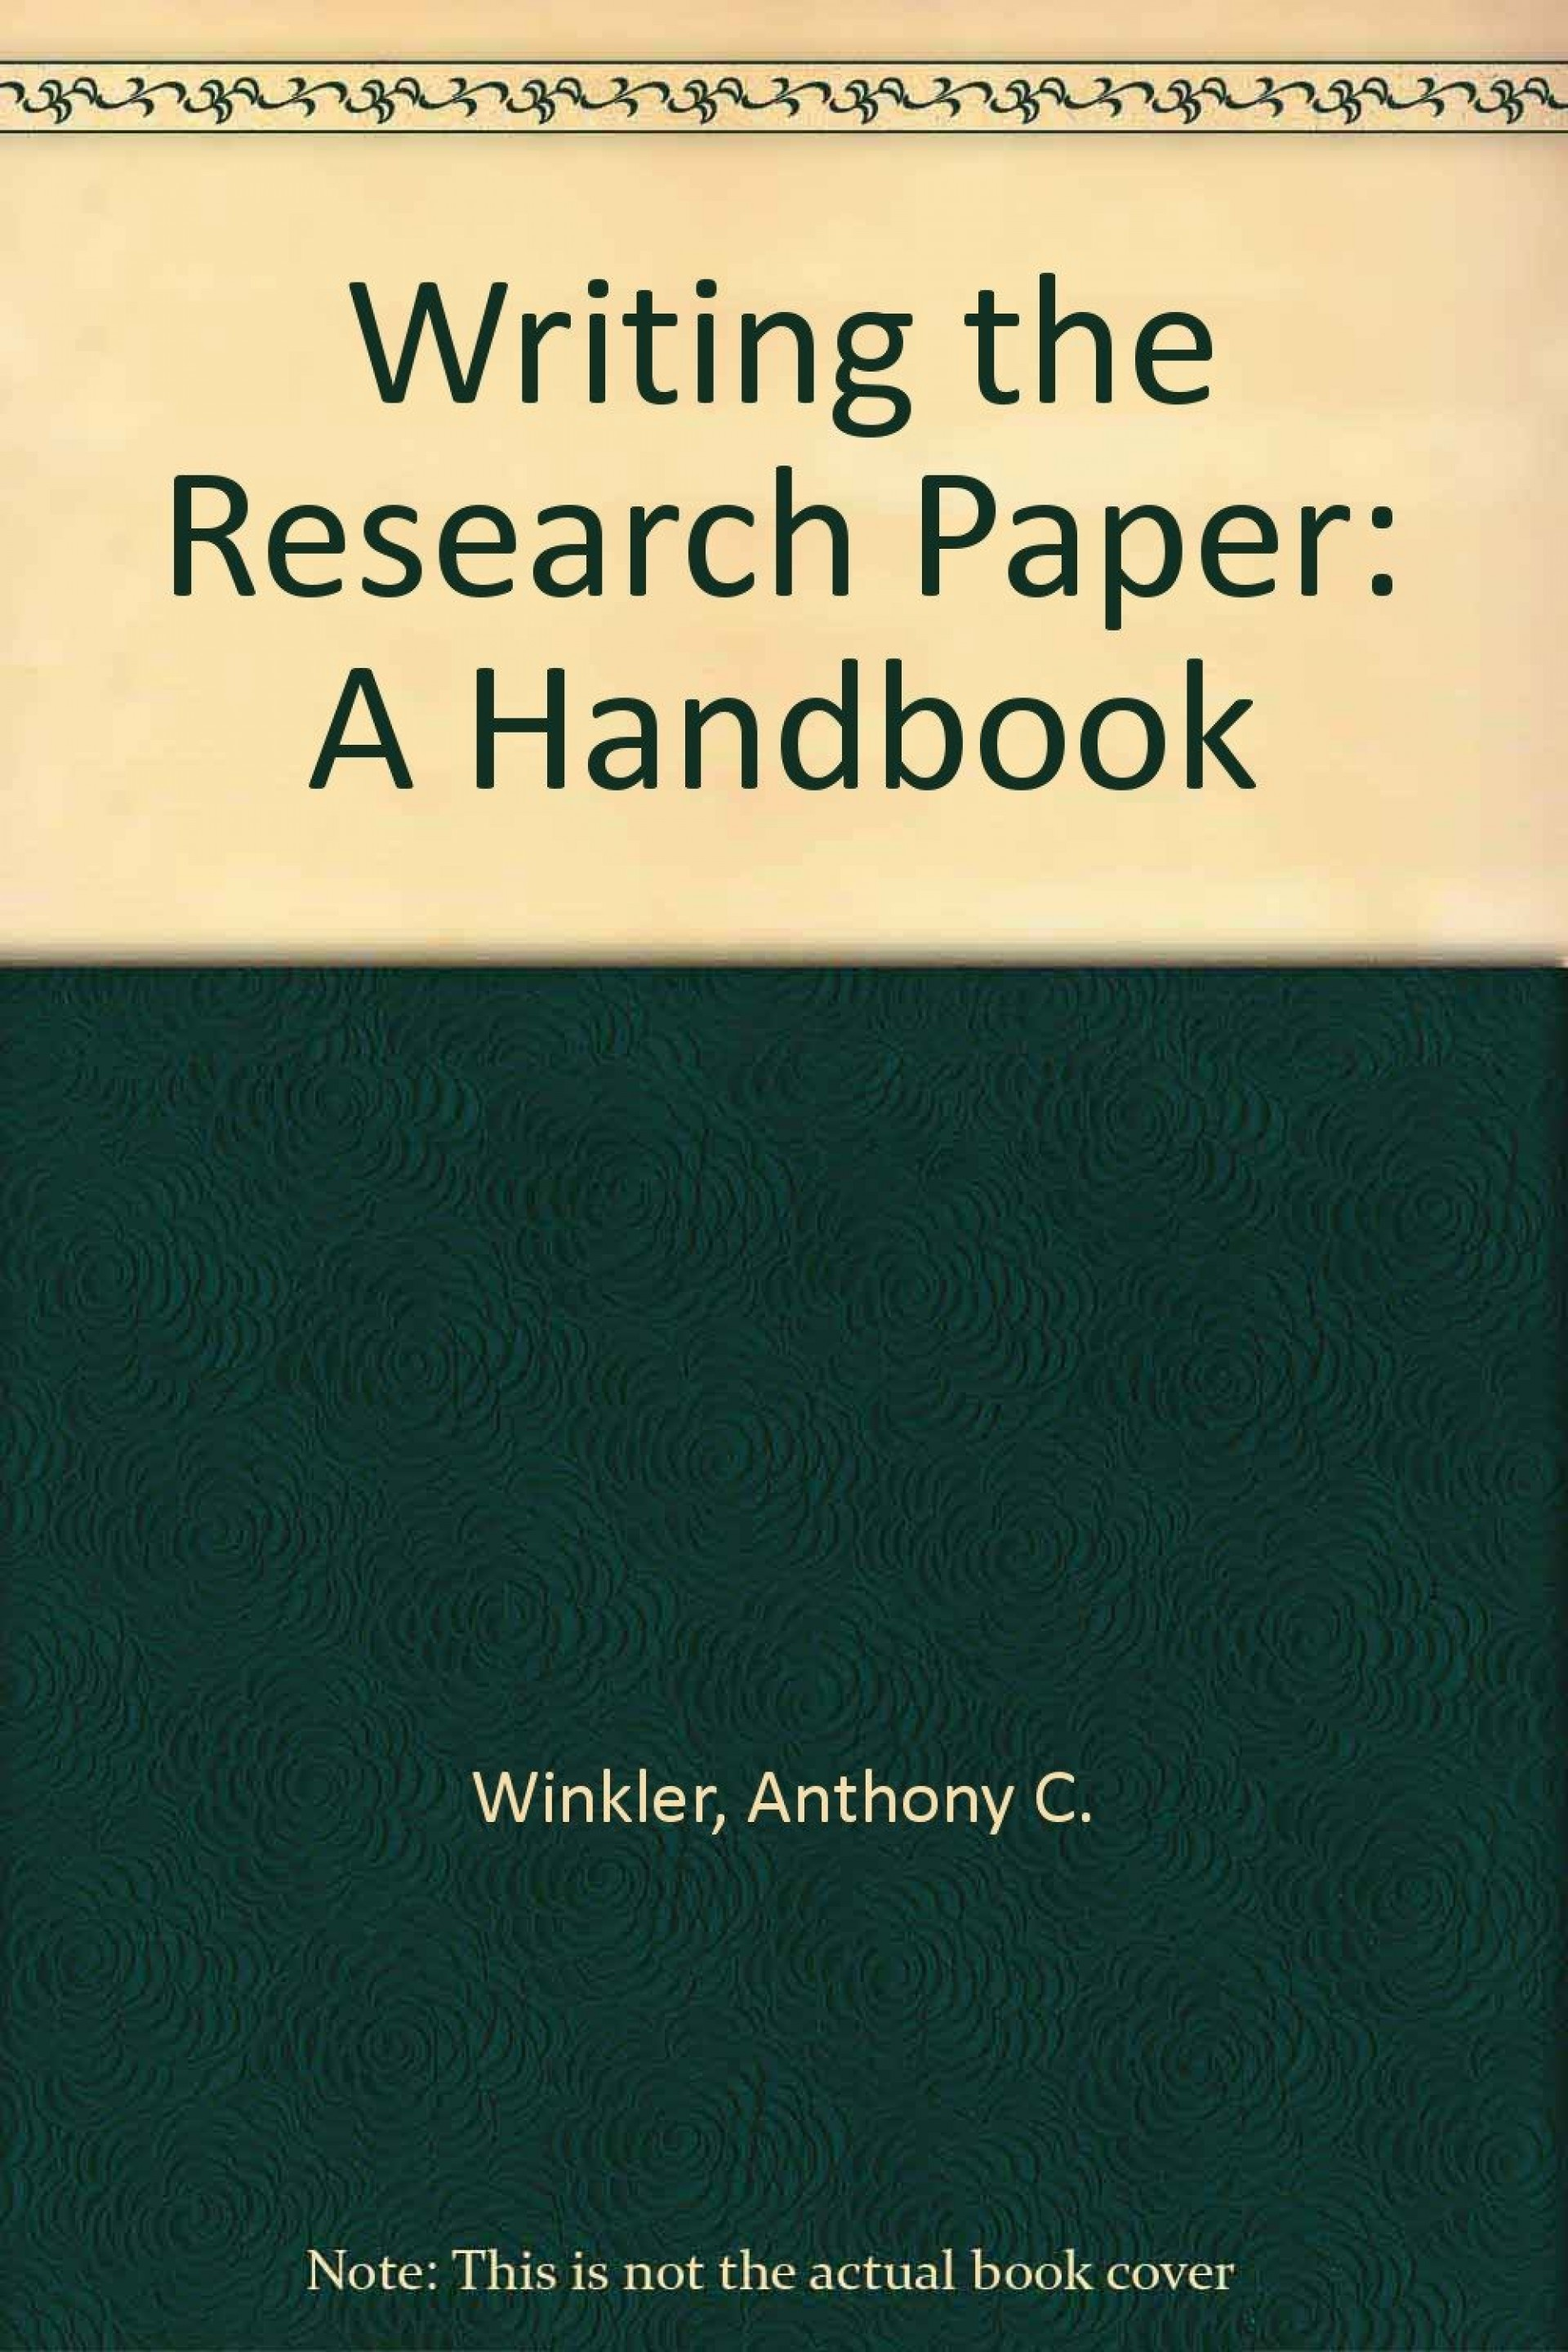 001 Research Paper 71n0iwptm6l Writing The Wonderful A Handbook 8th Edition 1920